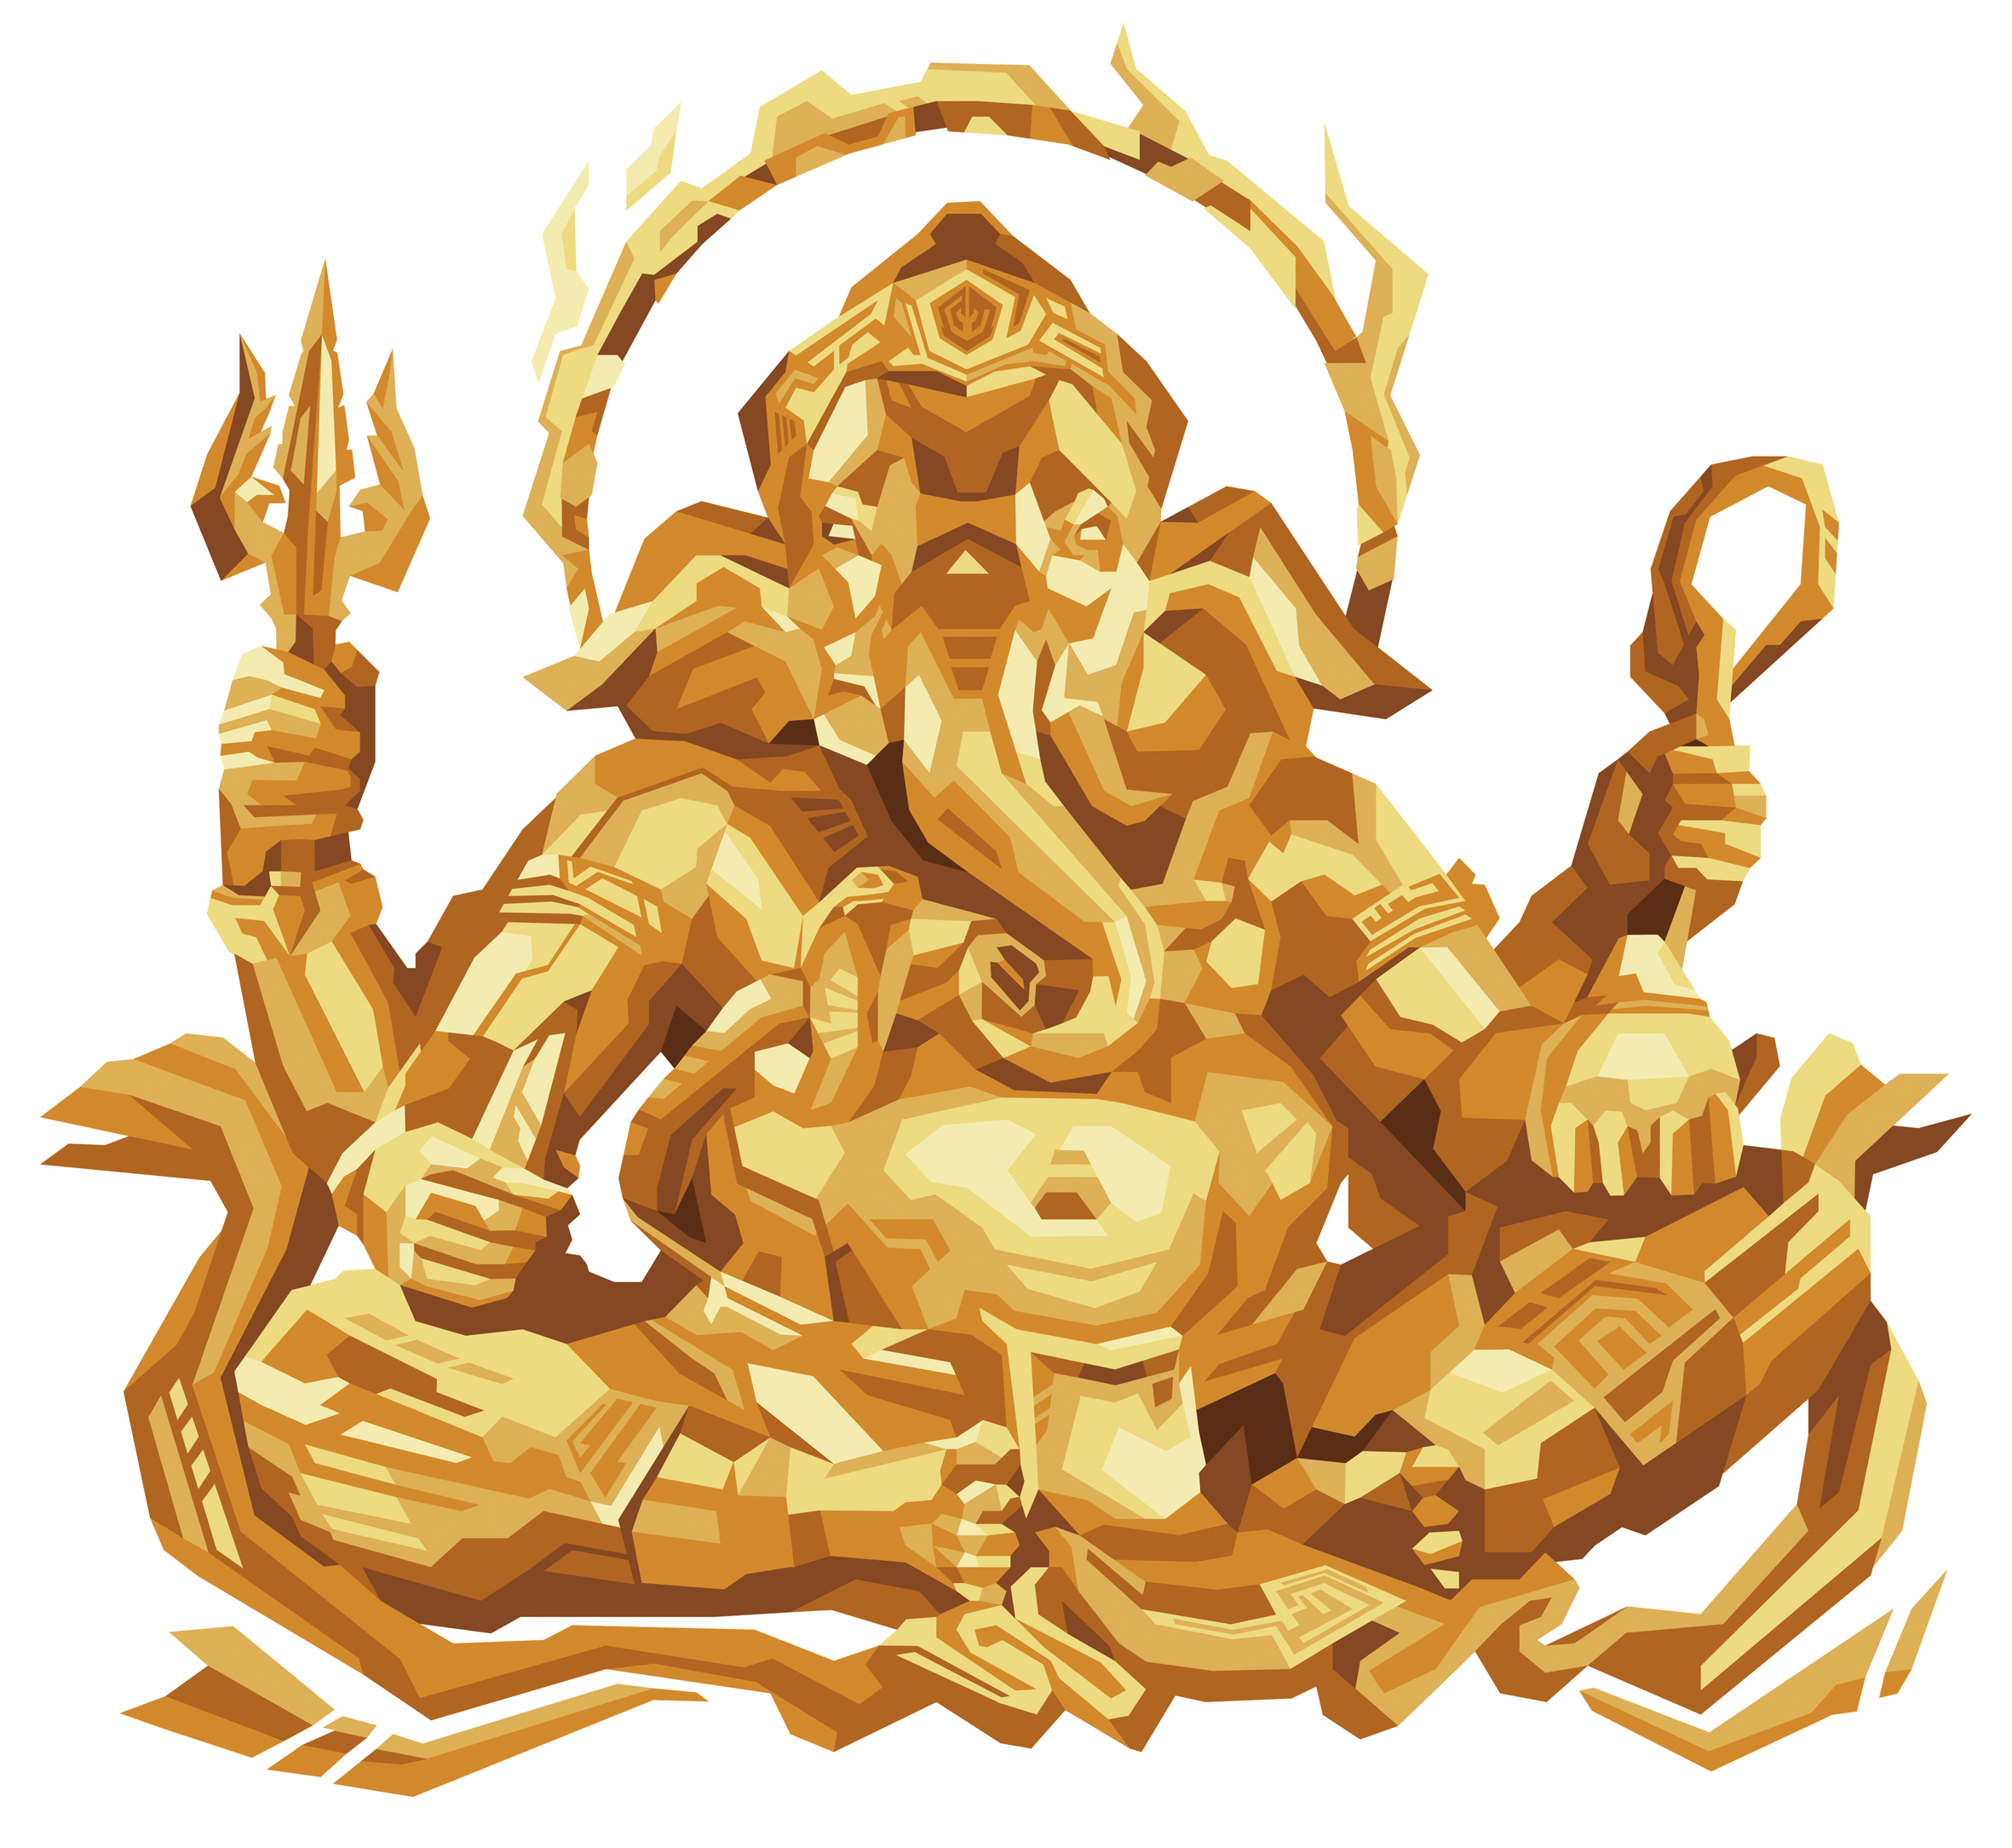 ganesha_final_7_layer